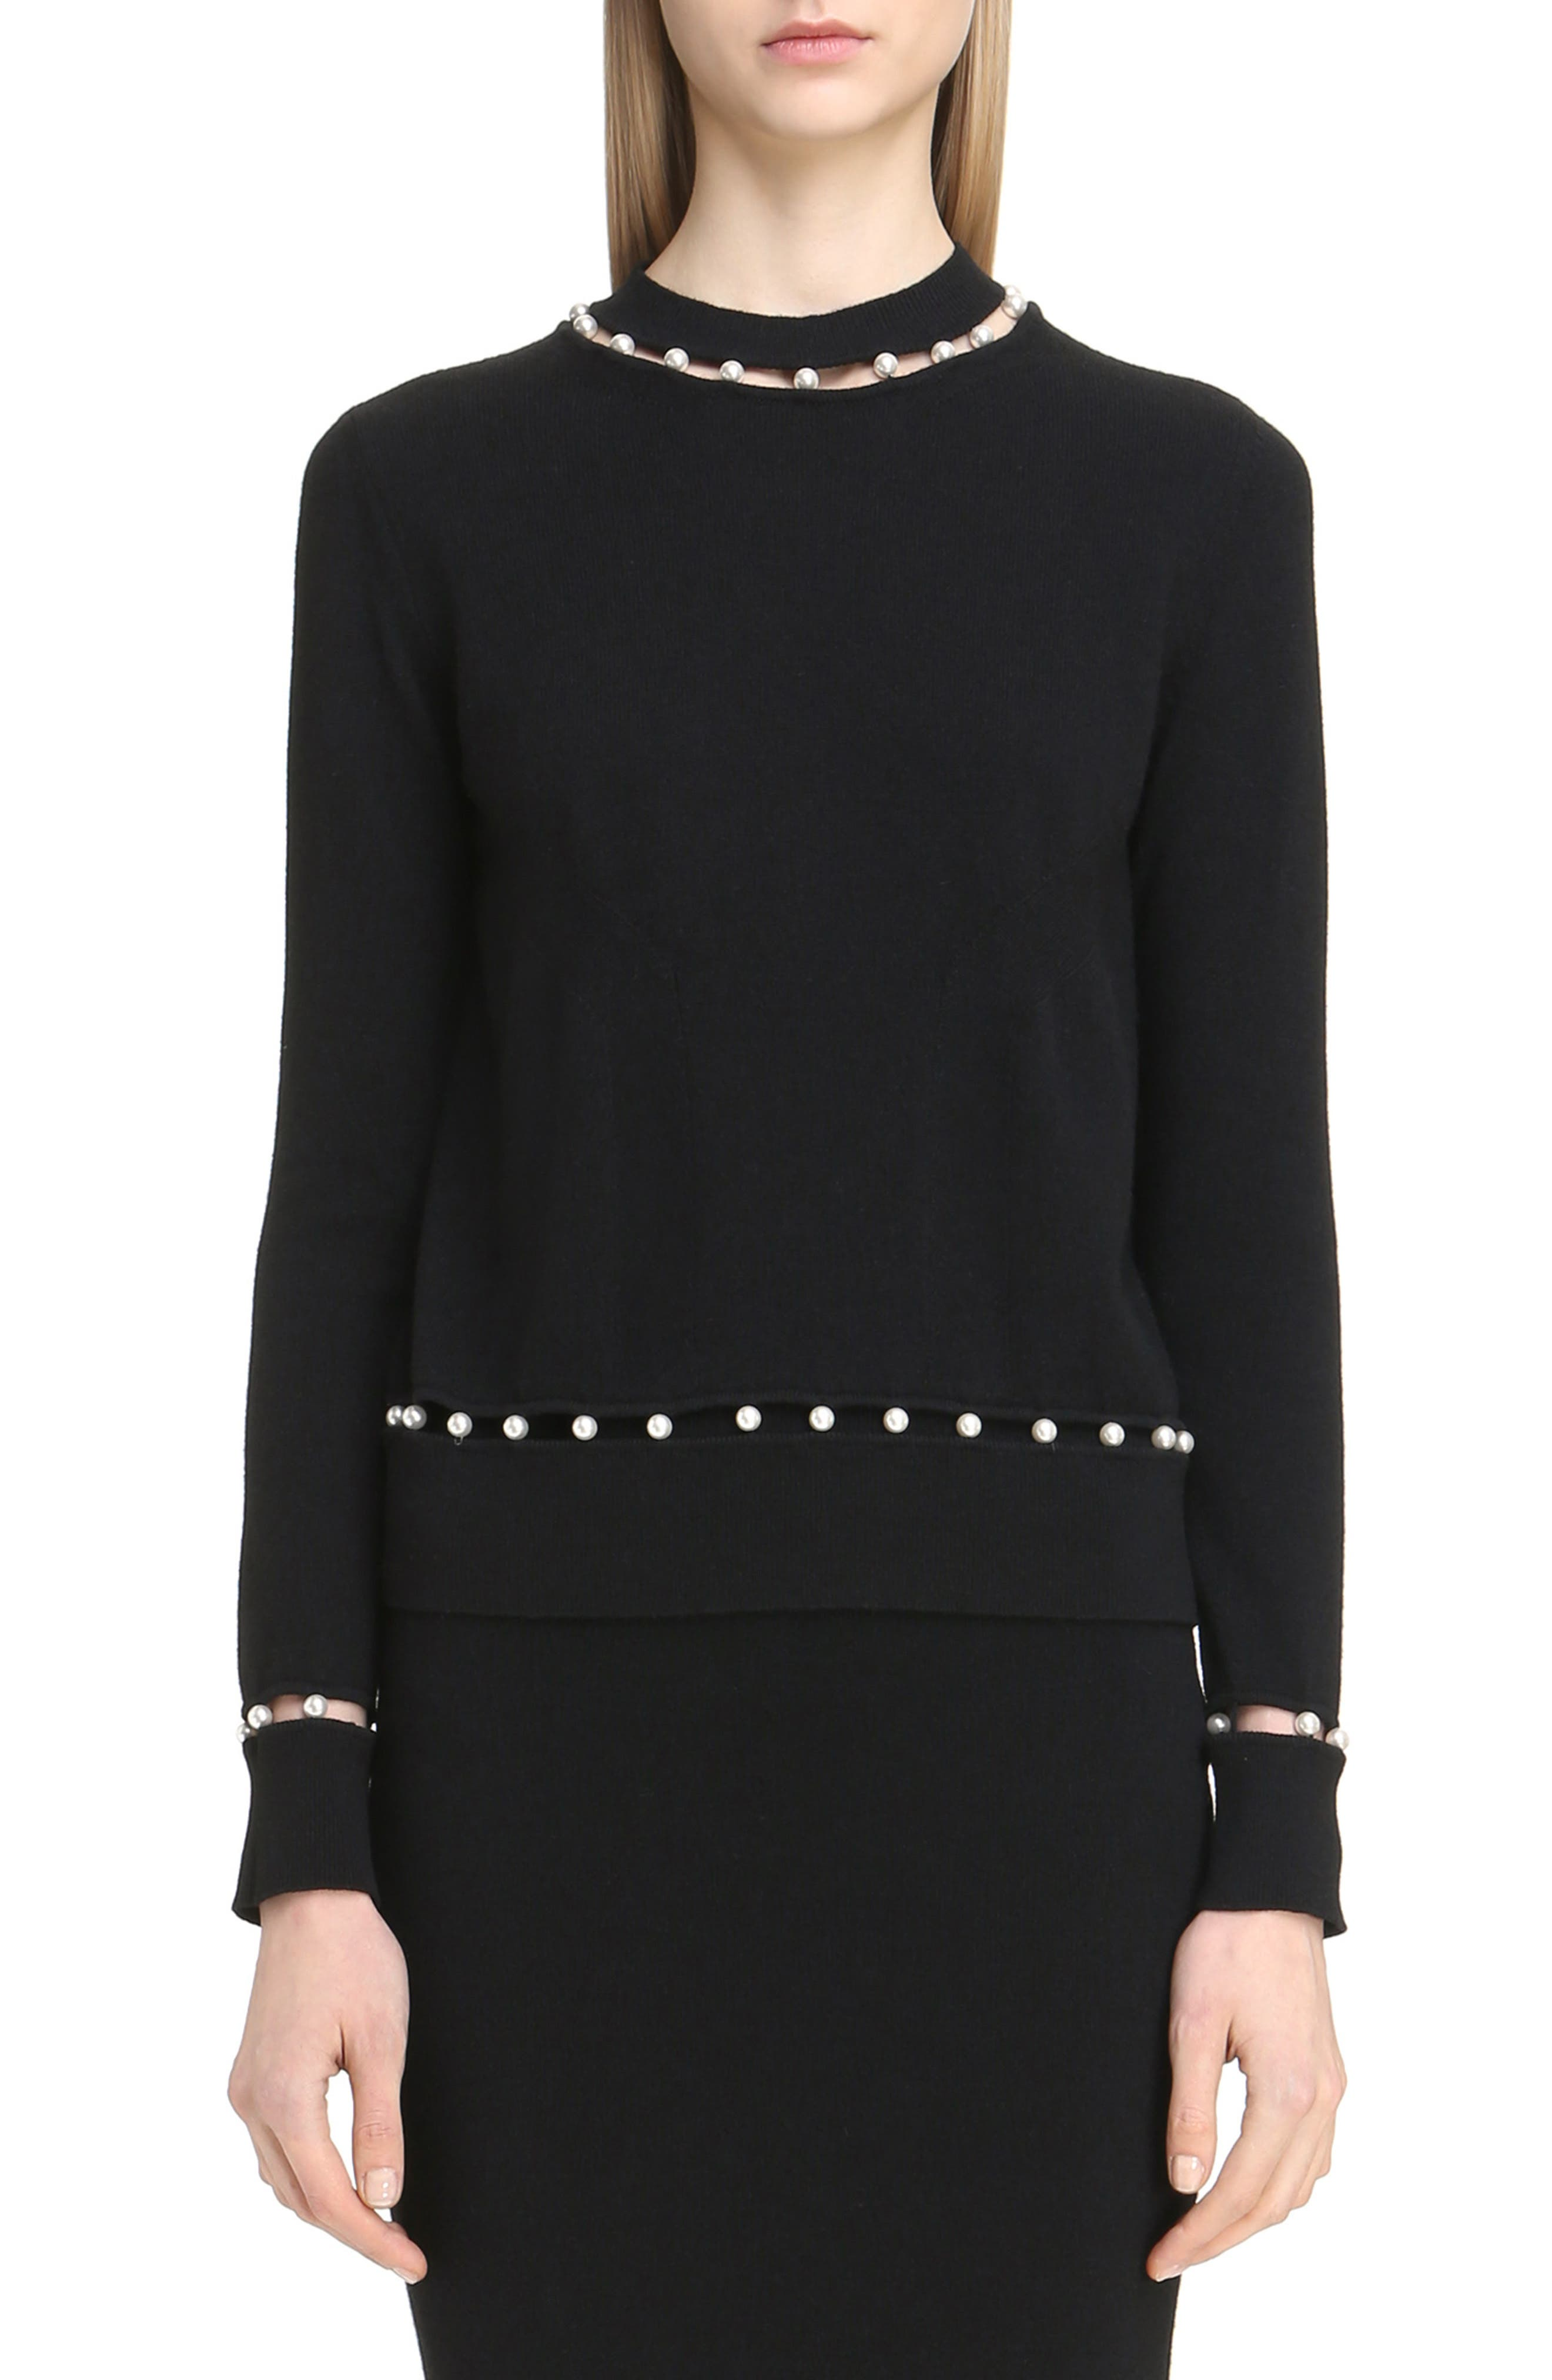 Main Image - Givenchy Imitation Pearl Inset Wool Blend Sweater